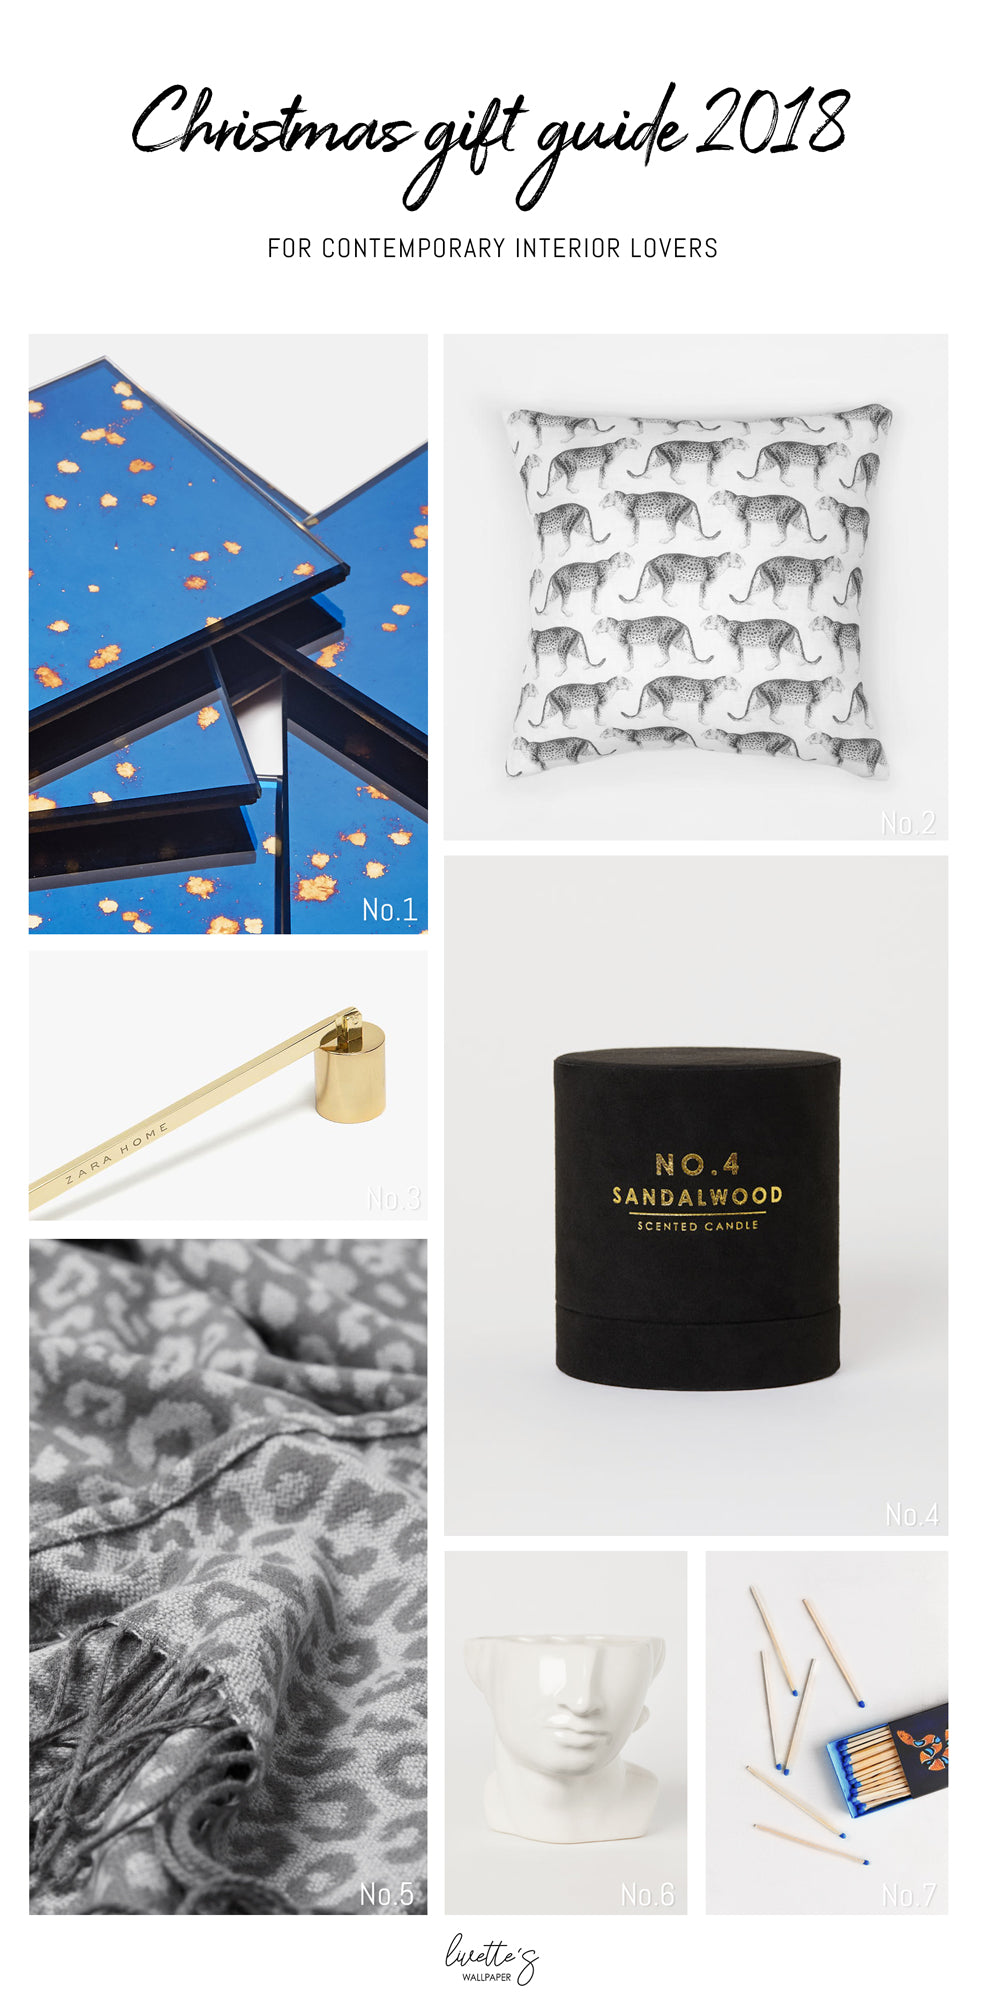 Christmas gift ideas for contemporary interior lovers